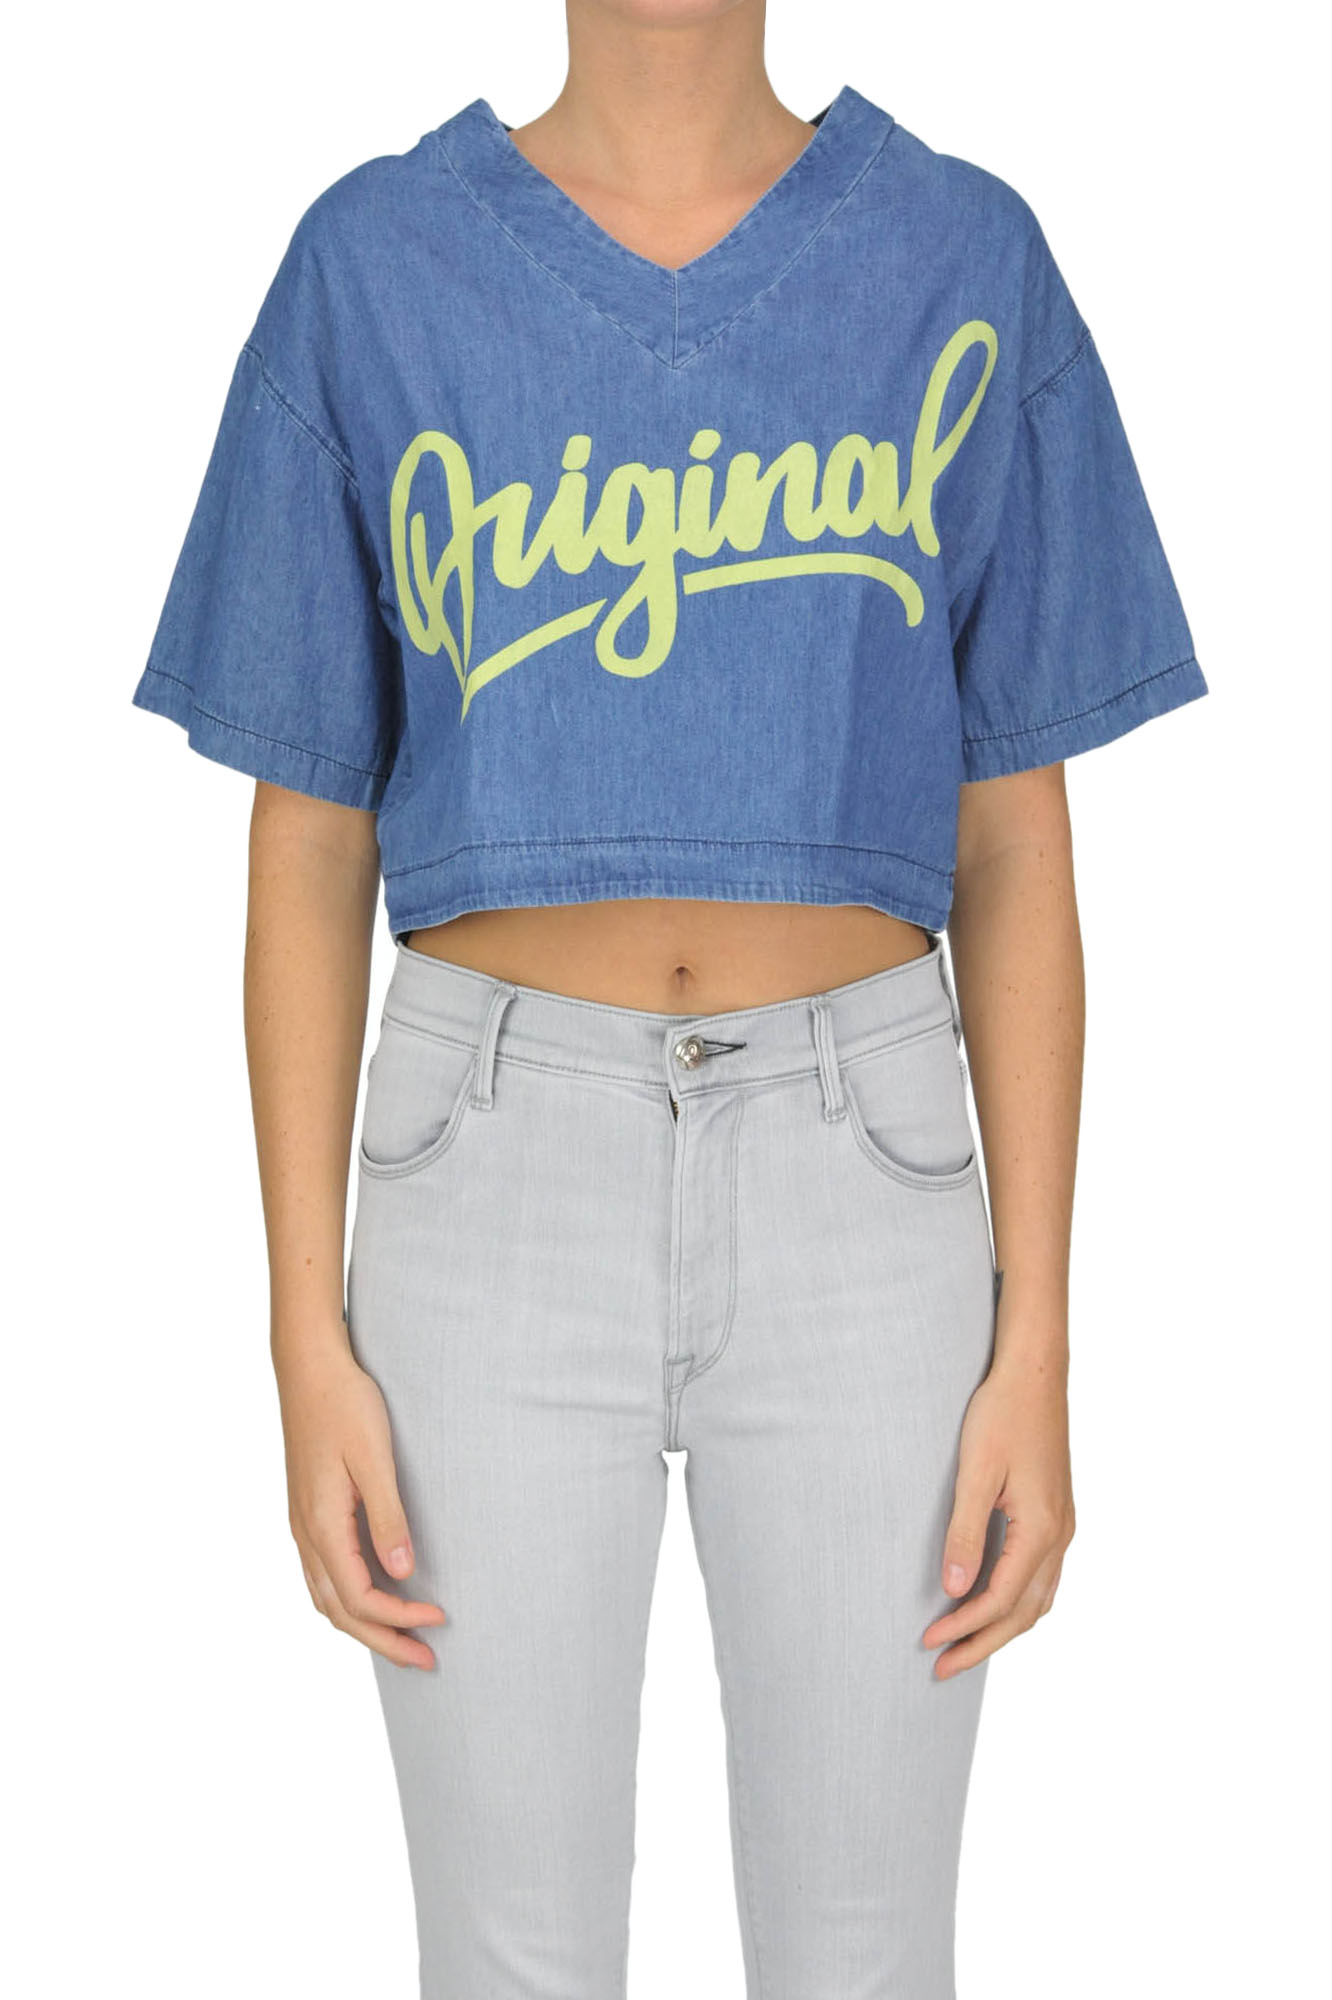 Image of Top cropped in denim